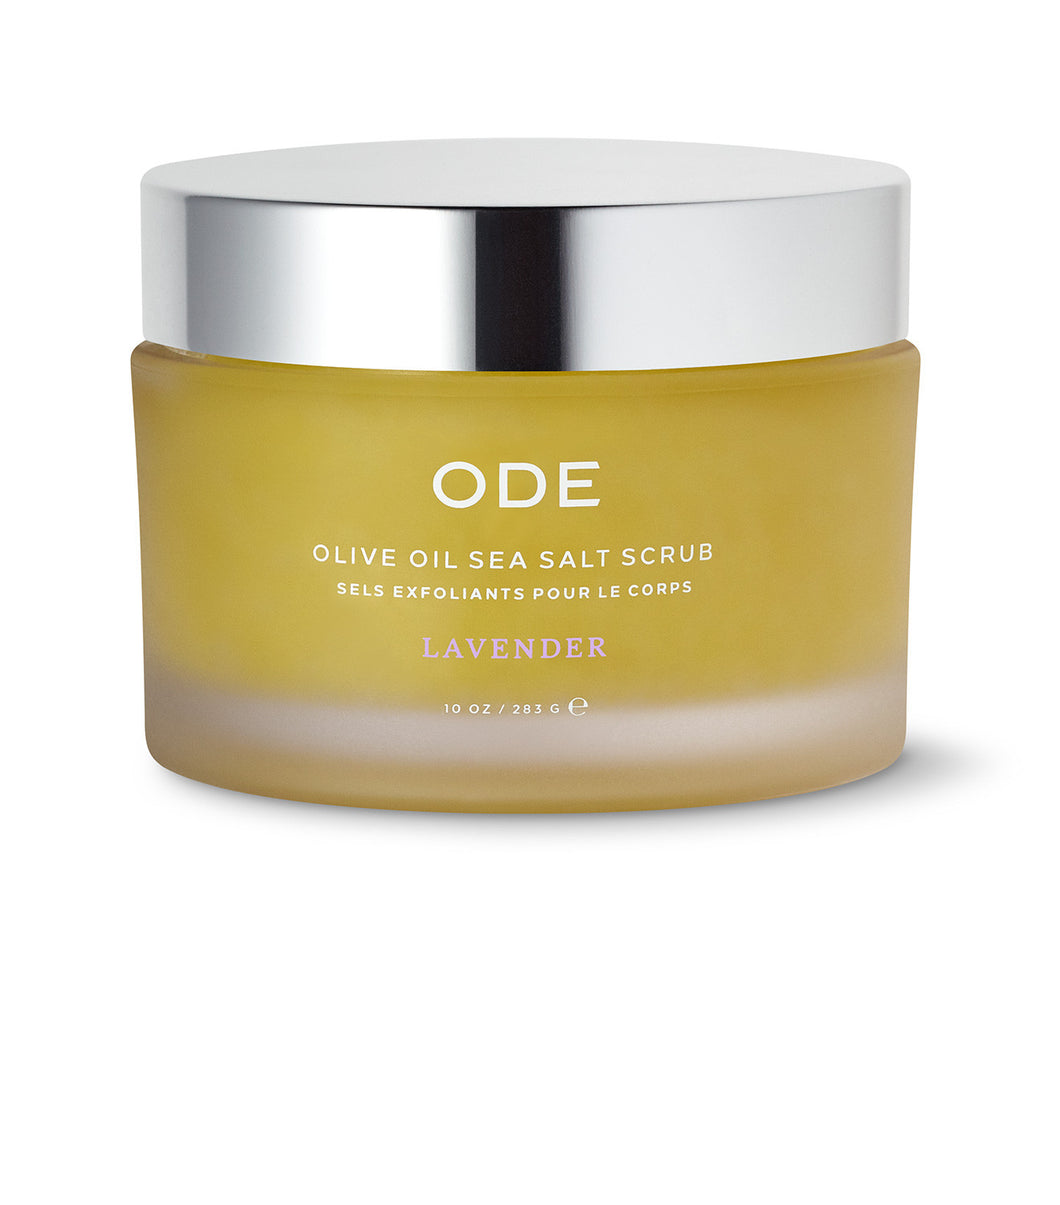 ODE Sea Salt Scrub Olive Oil - Lavender